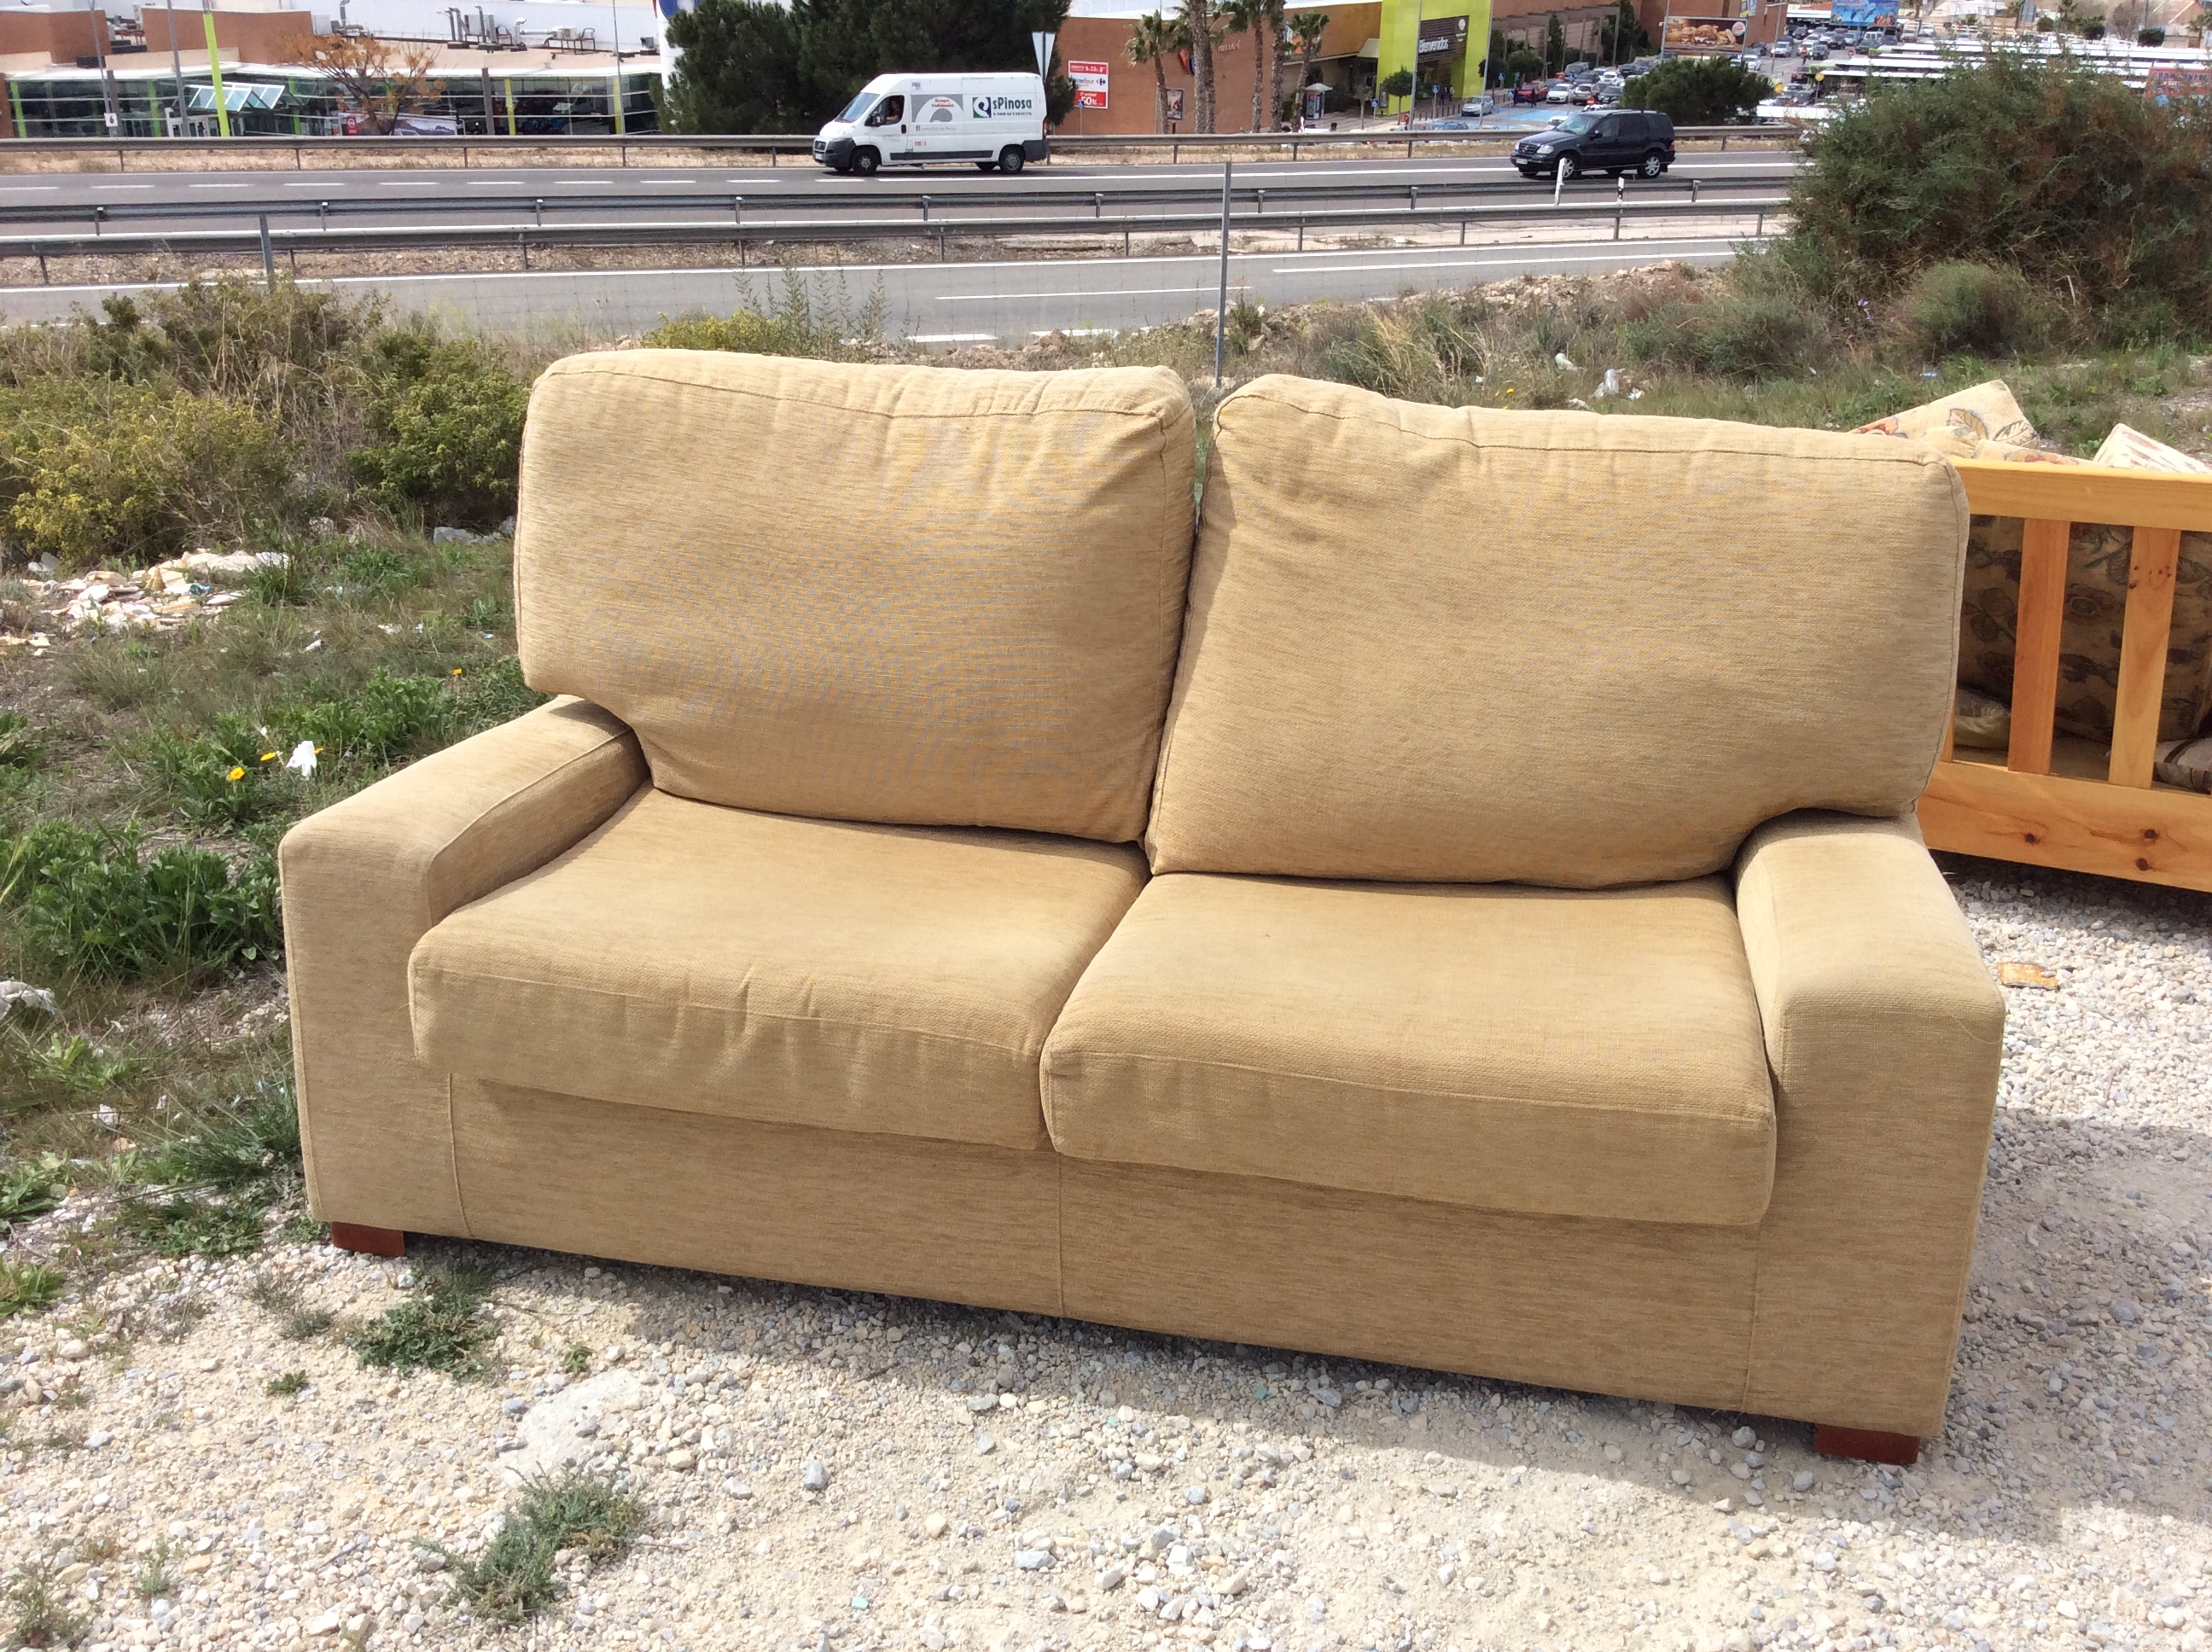 For sale: 3 seater sofa bed - Buy and sell items in Villena ...